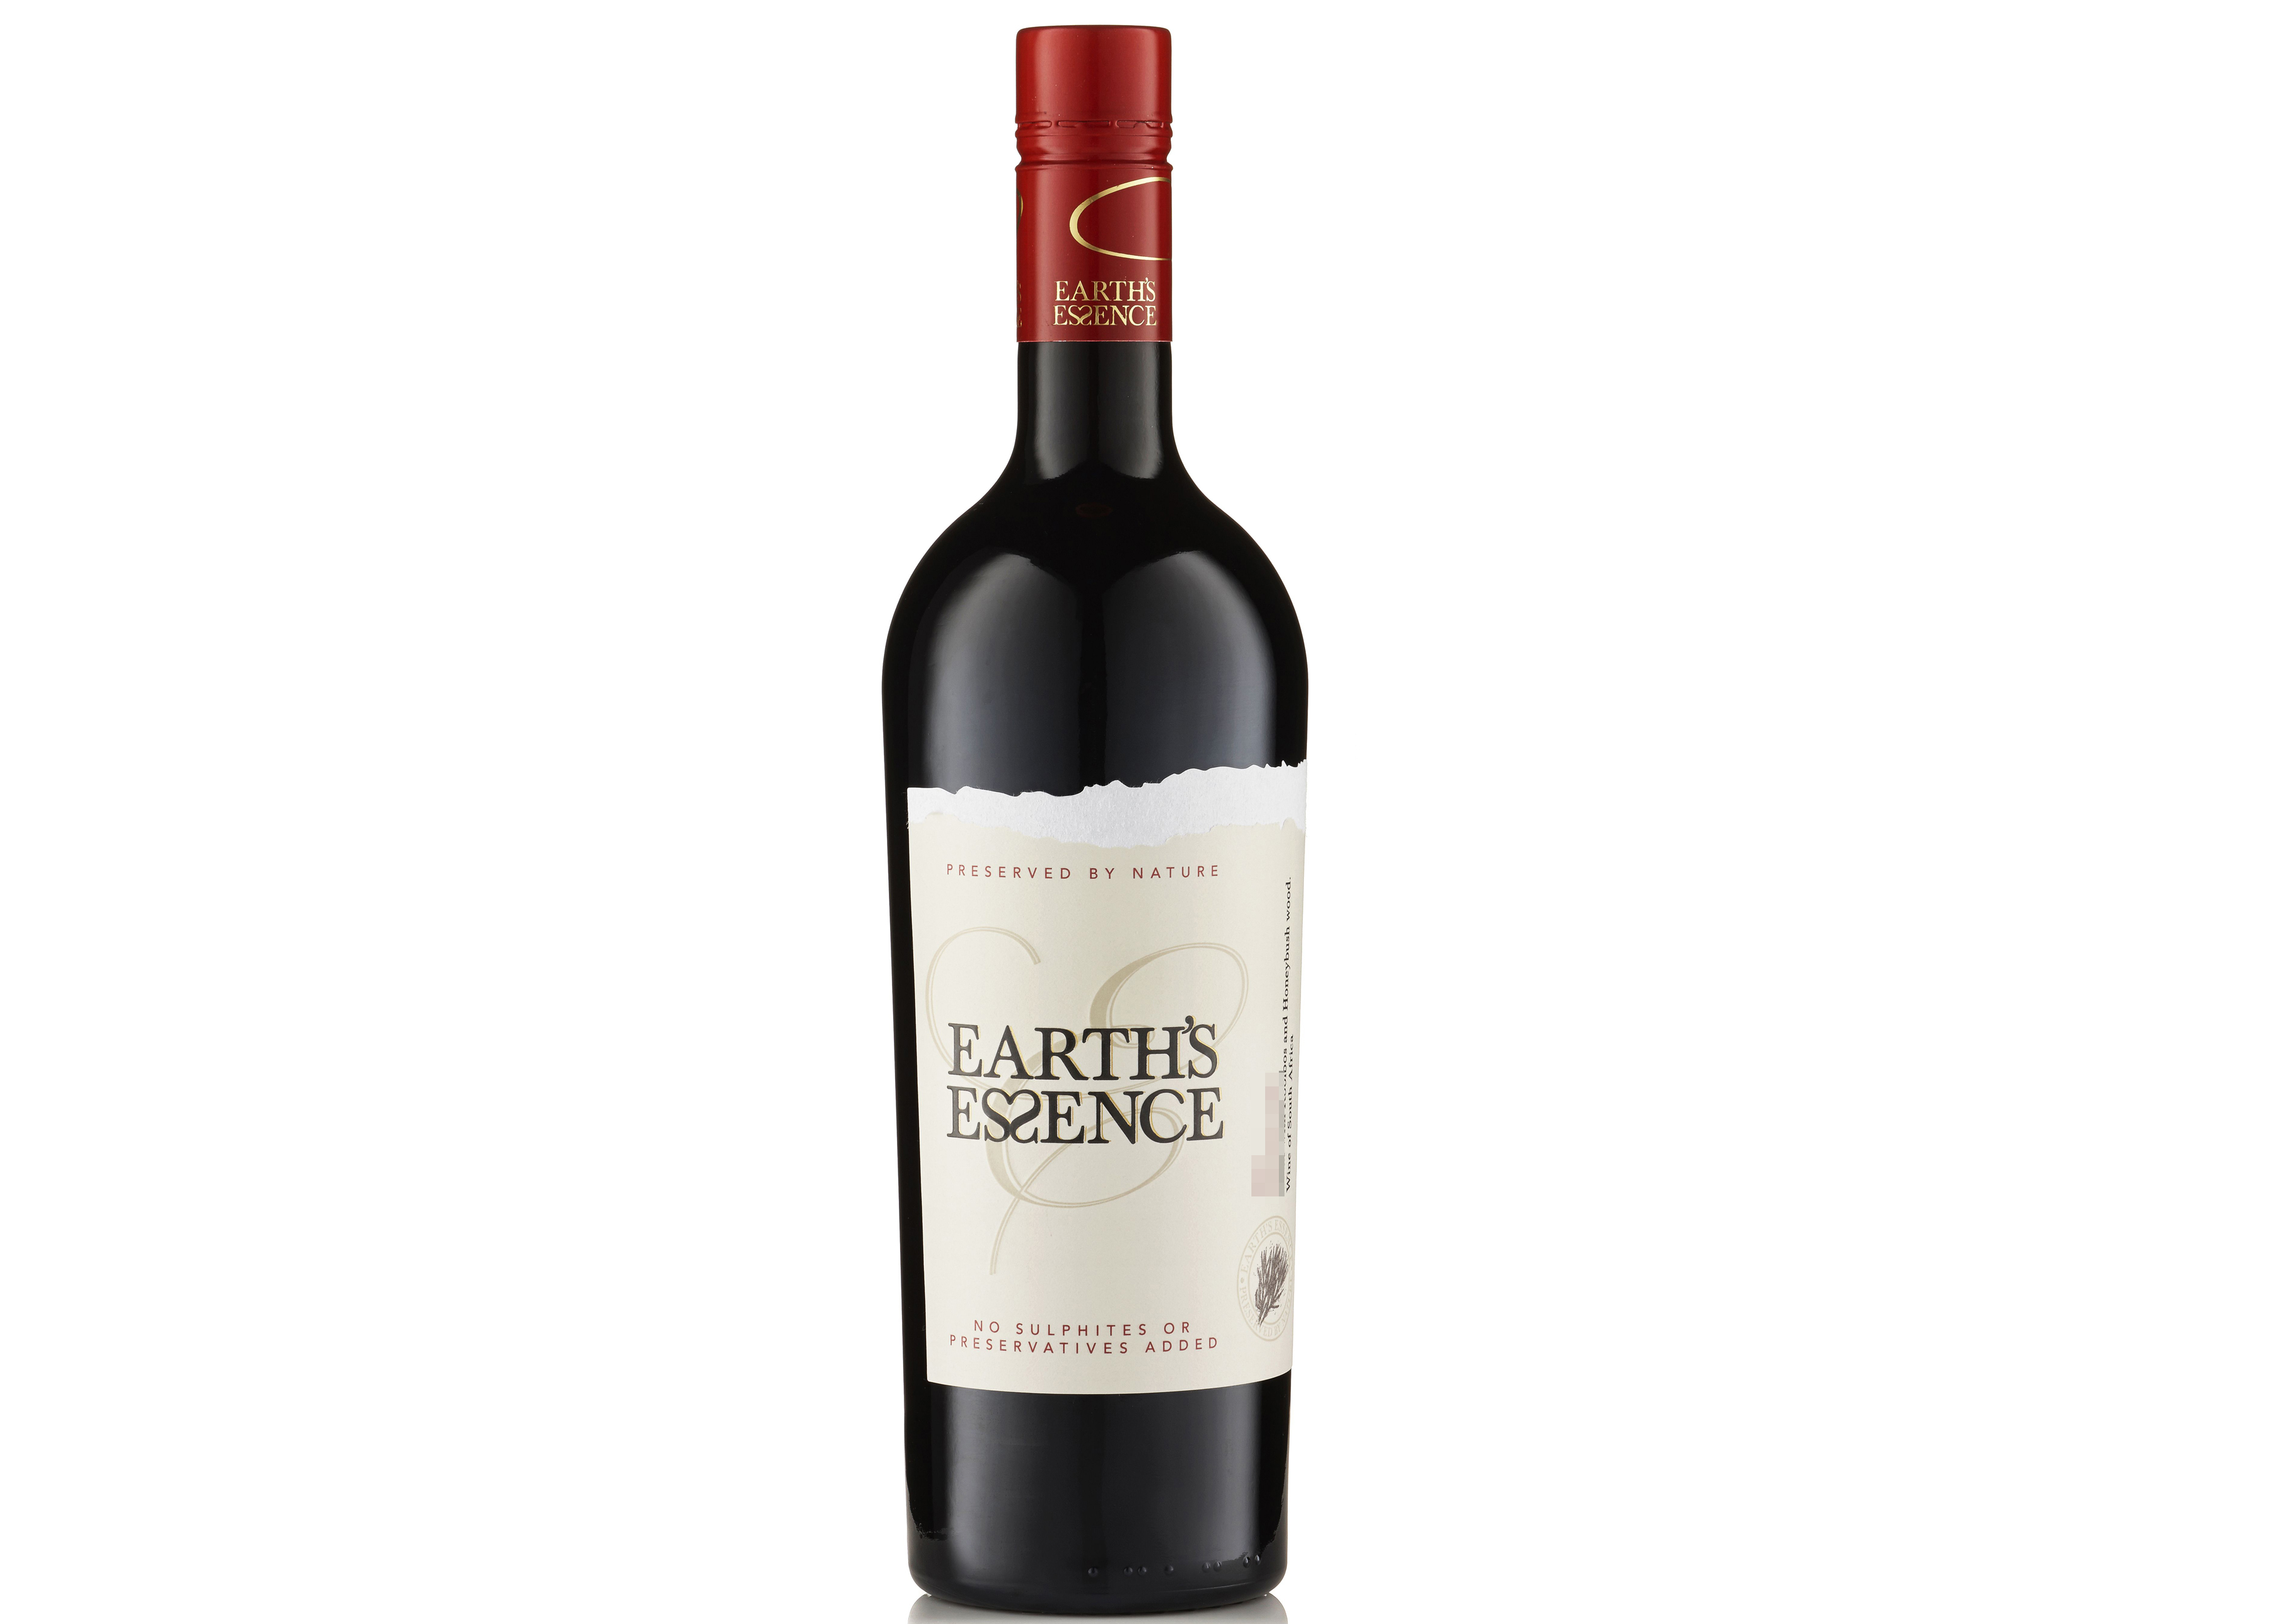 Bottle of Earth's Essence pinotage, South Africa, red wines